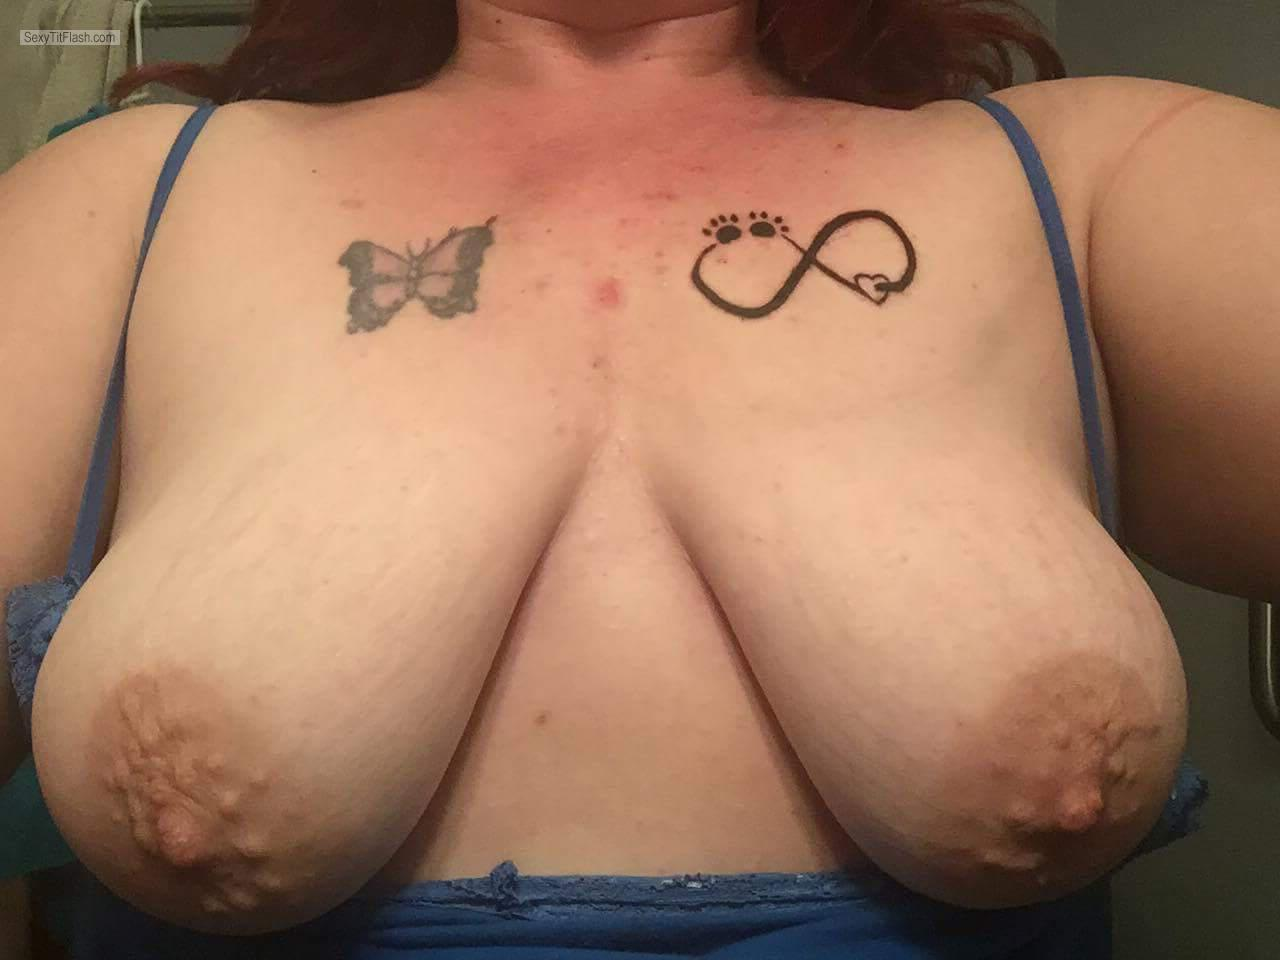 Tit Flash: Girlfriend's Medium Tits - Topless My Milf from Canada